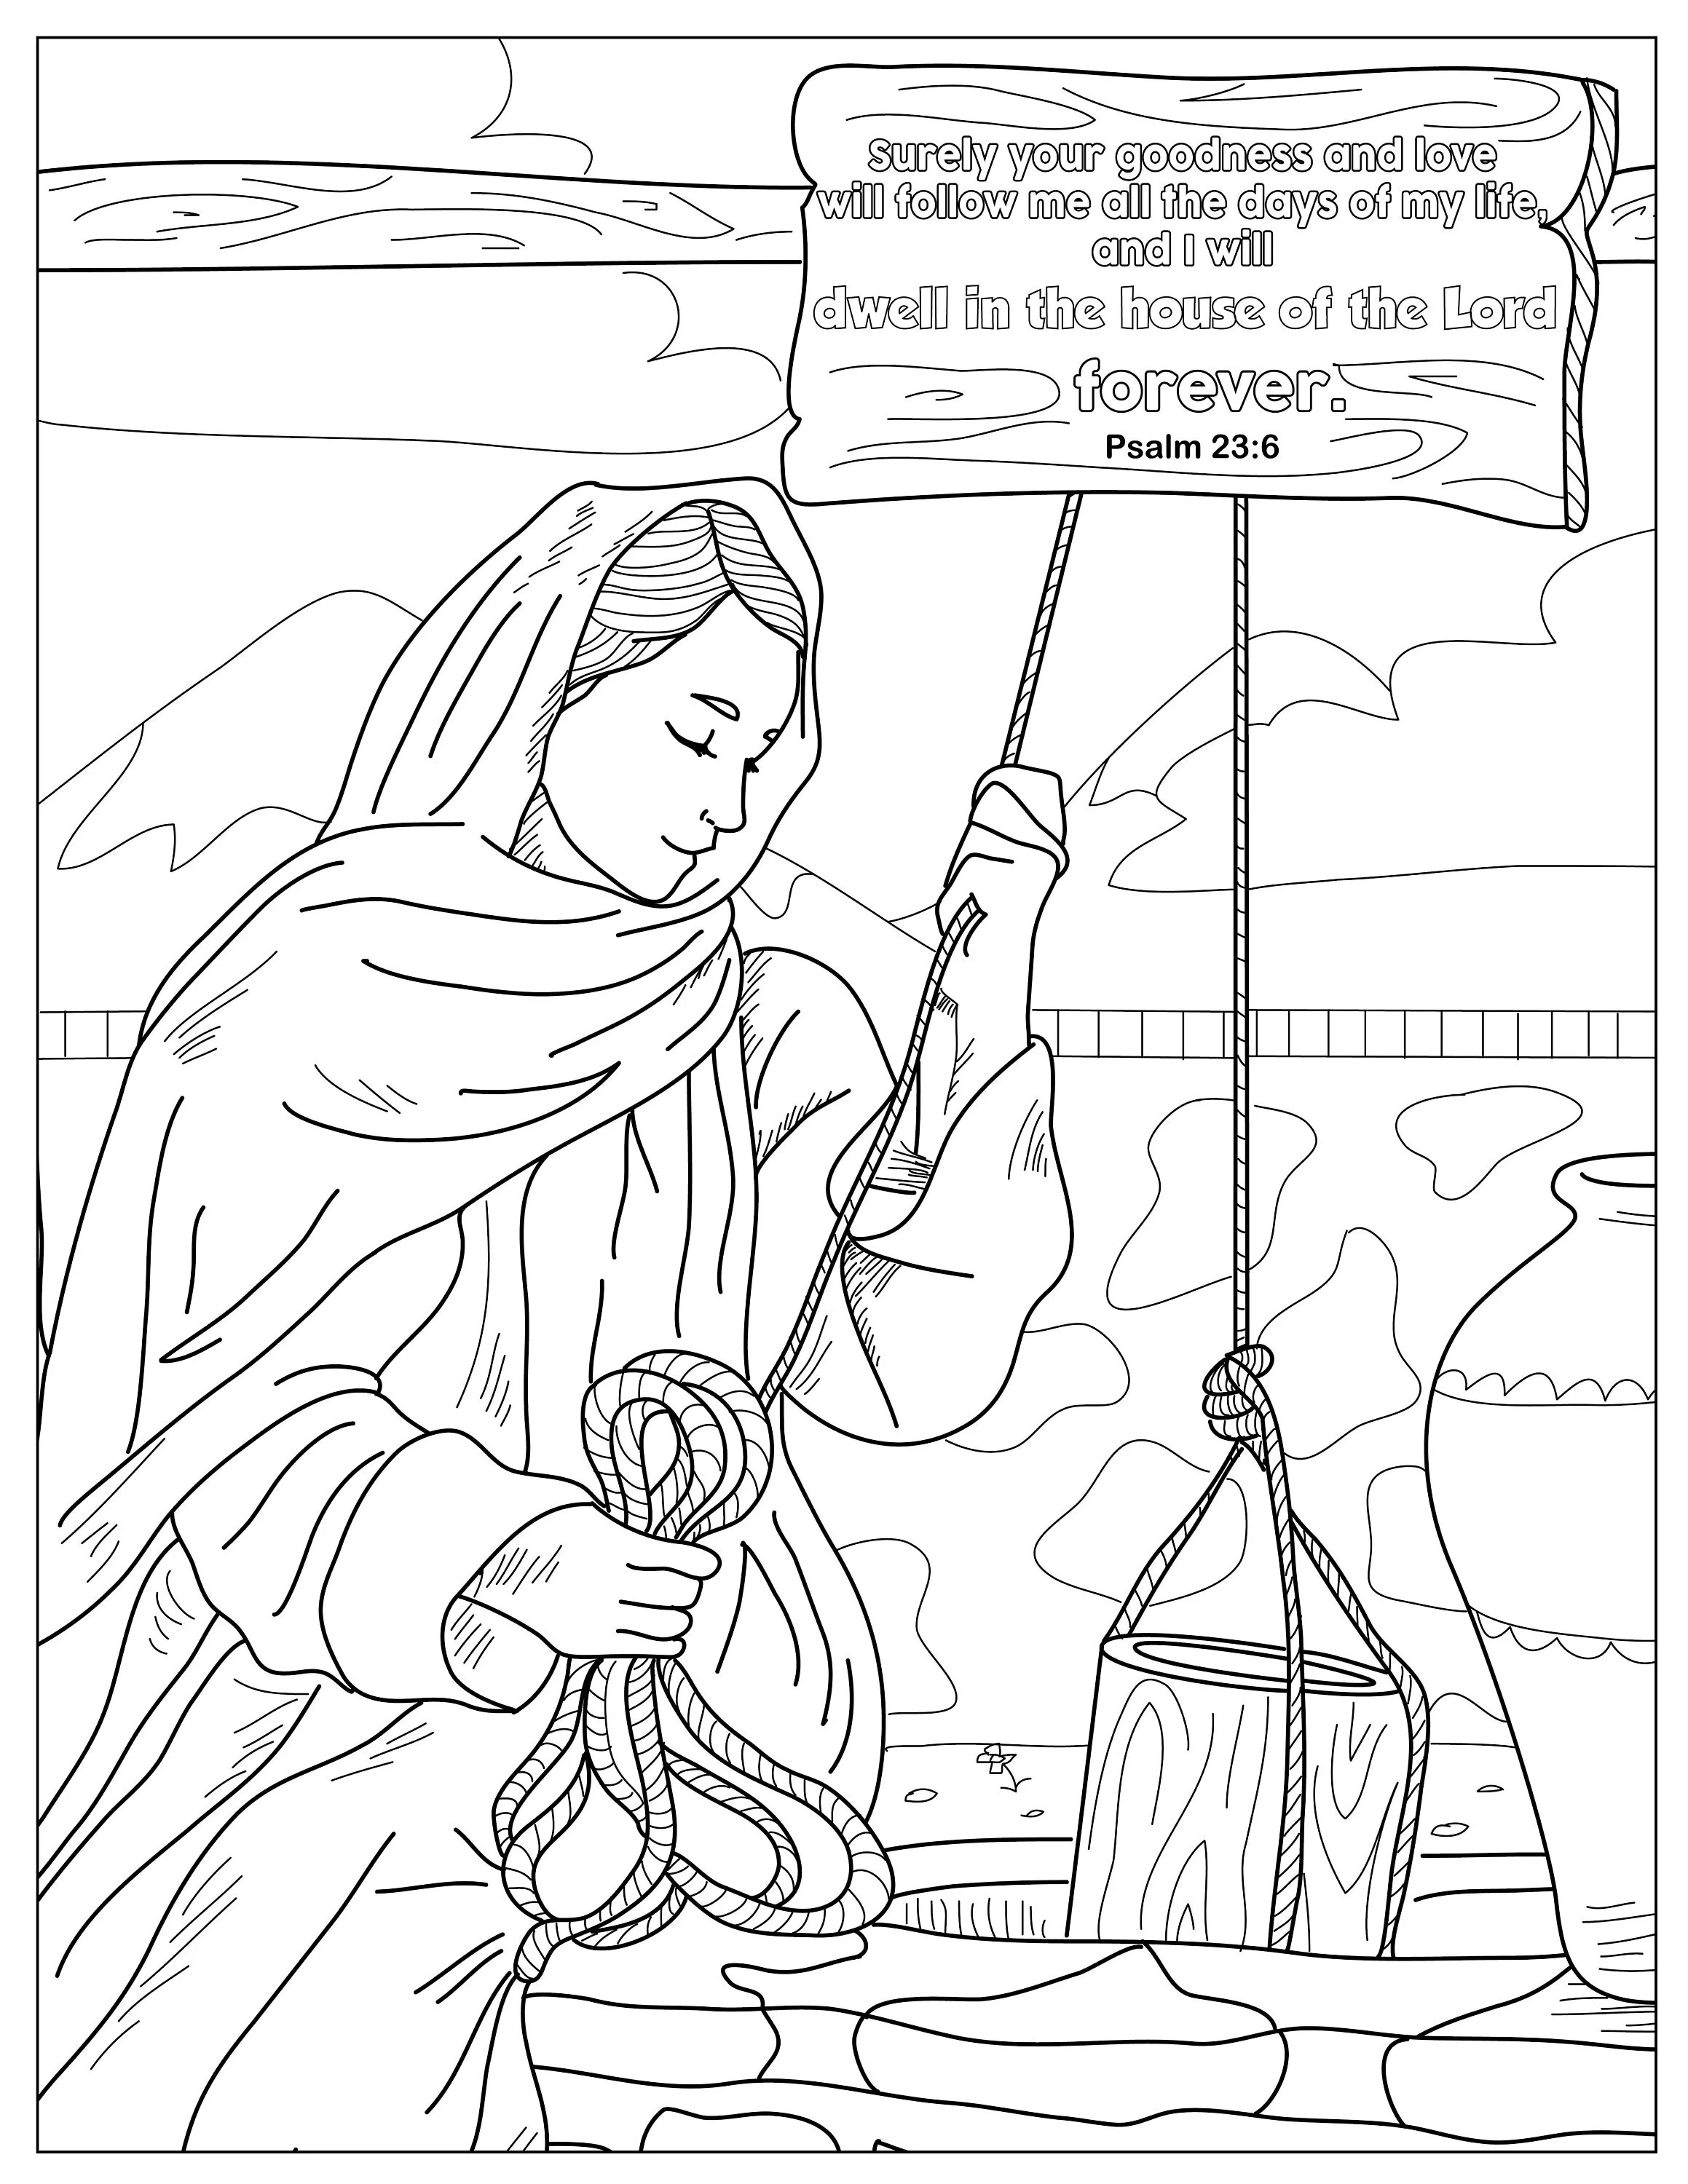 Psalm 23:6 Coloring Pages for Adults 1 Printable Coloring